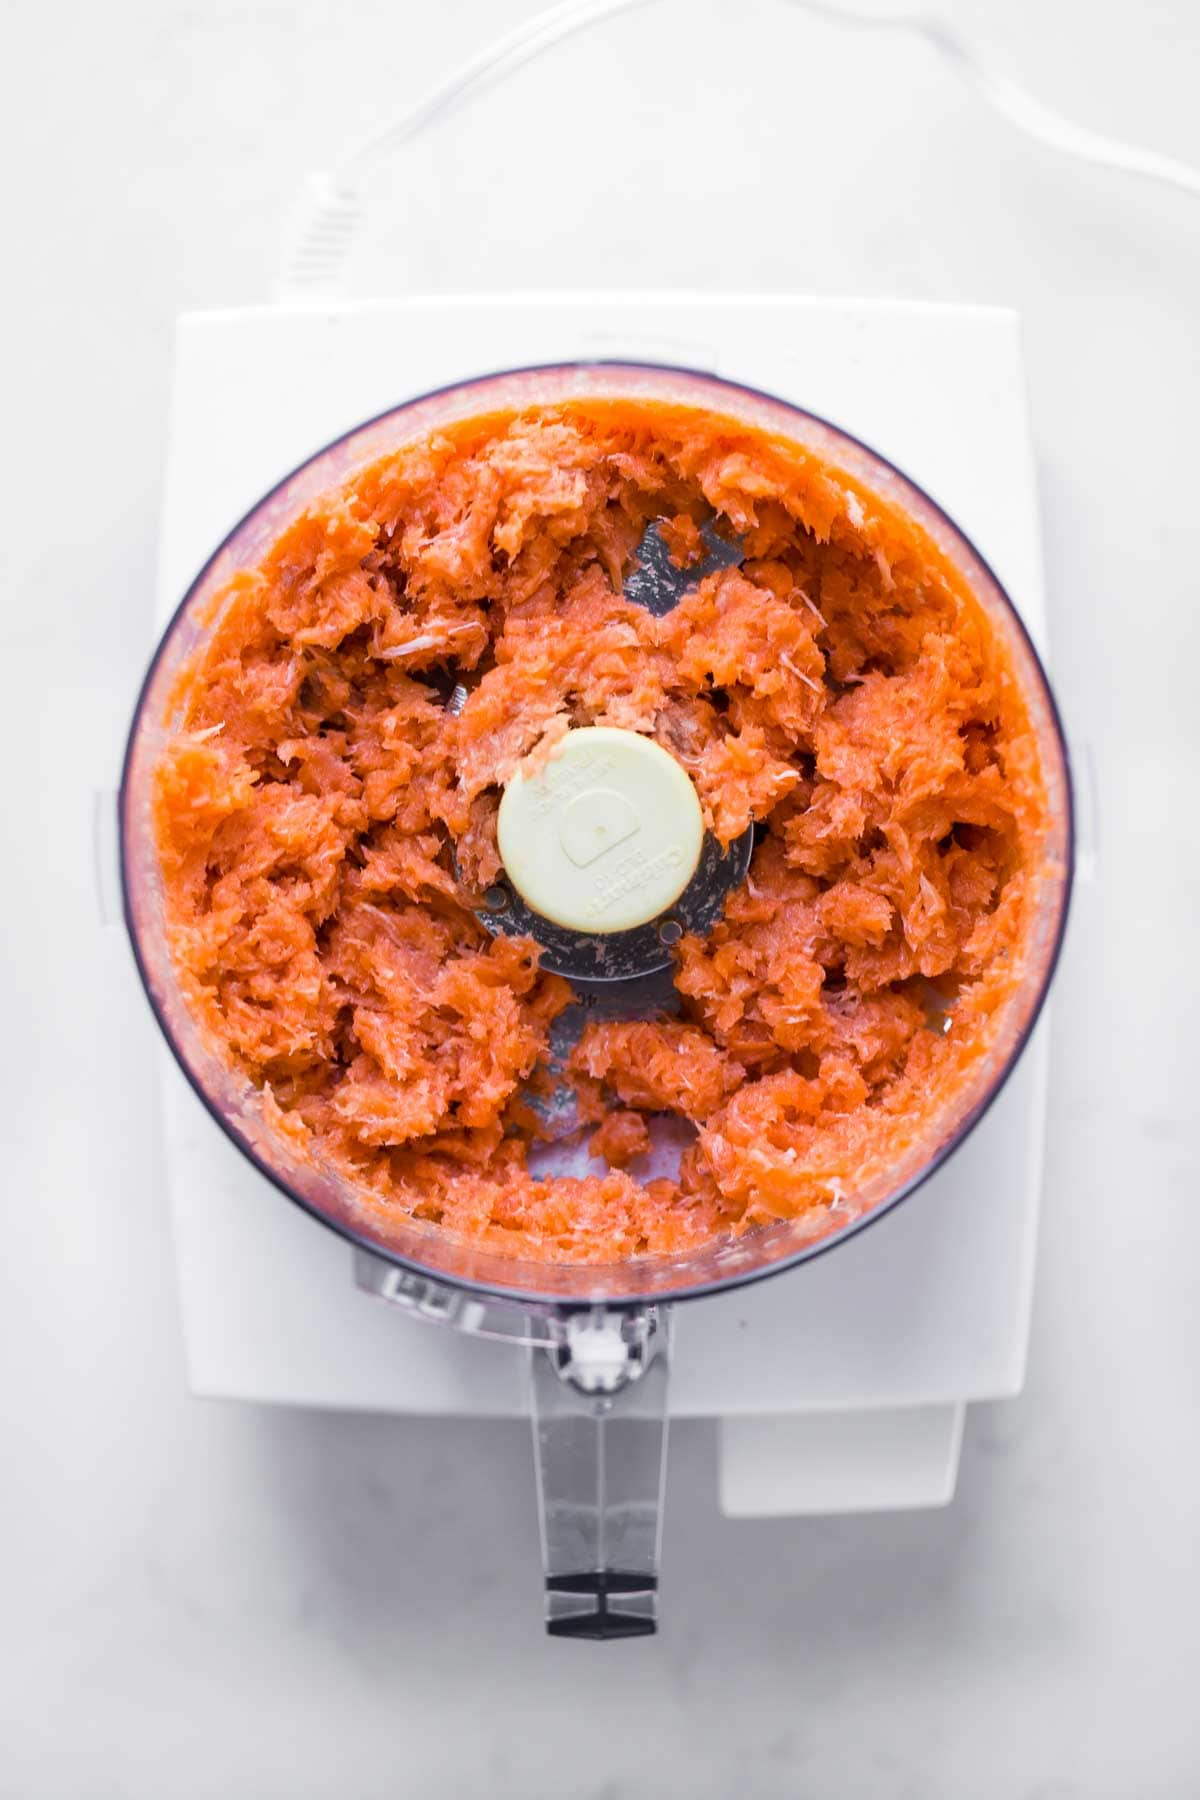 Meat in a food processor.